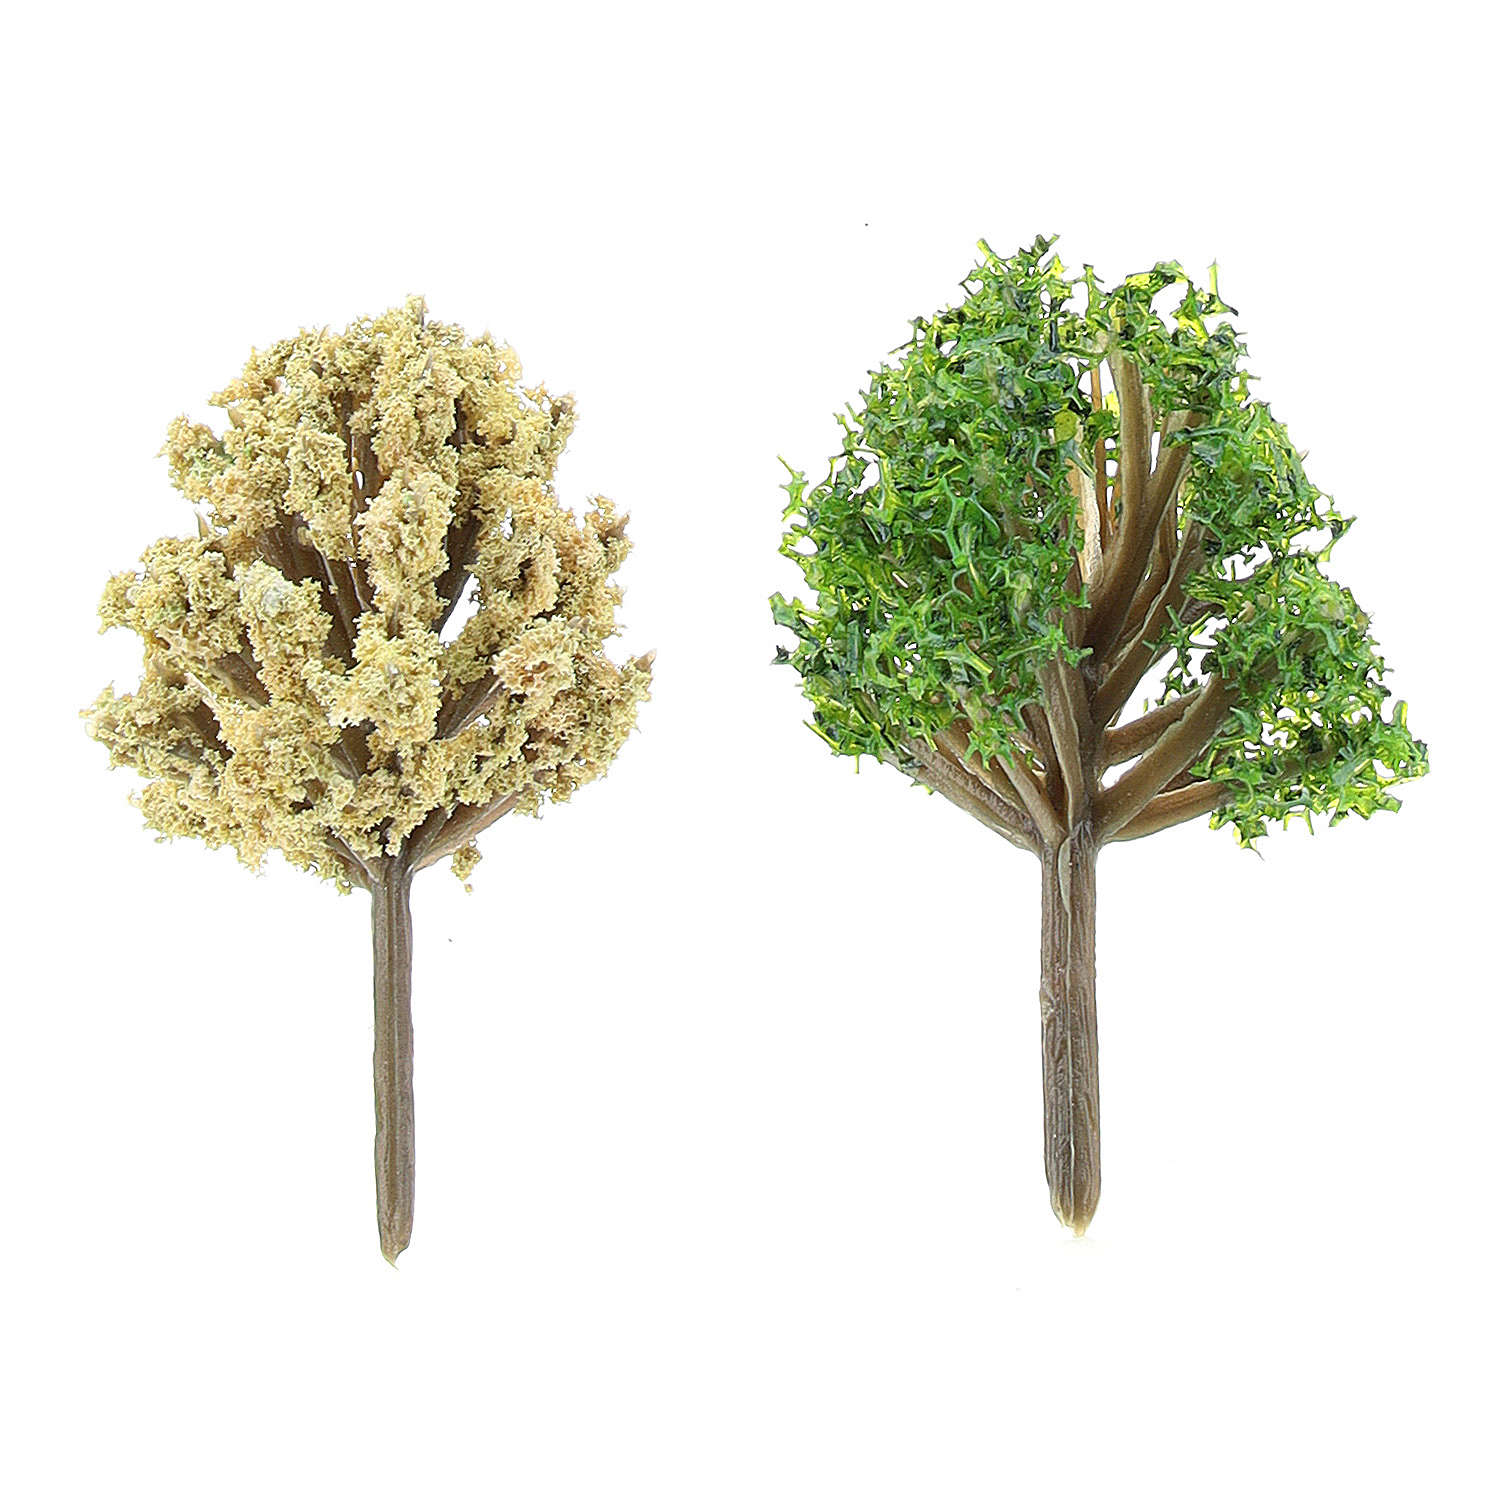 Assorted bushes in plastic Moranduzzo for 6-10 cm Nativity scene, 2 pcs 4